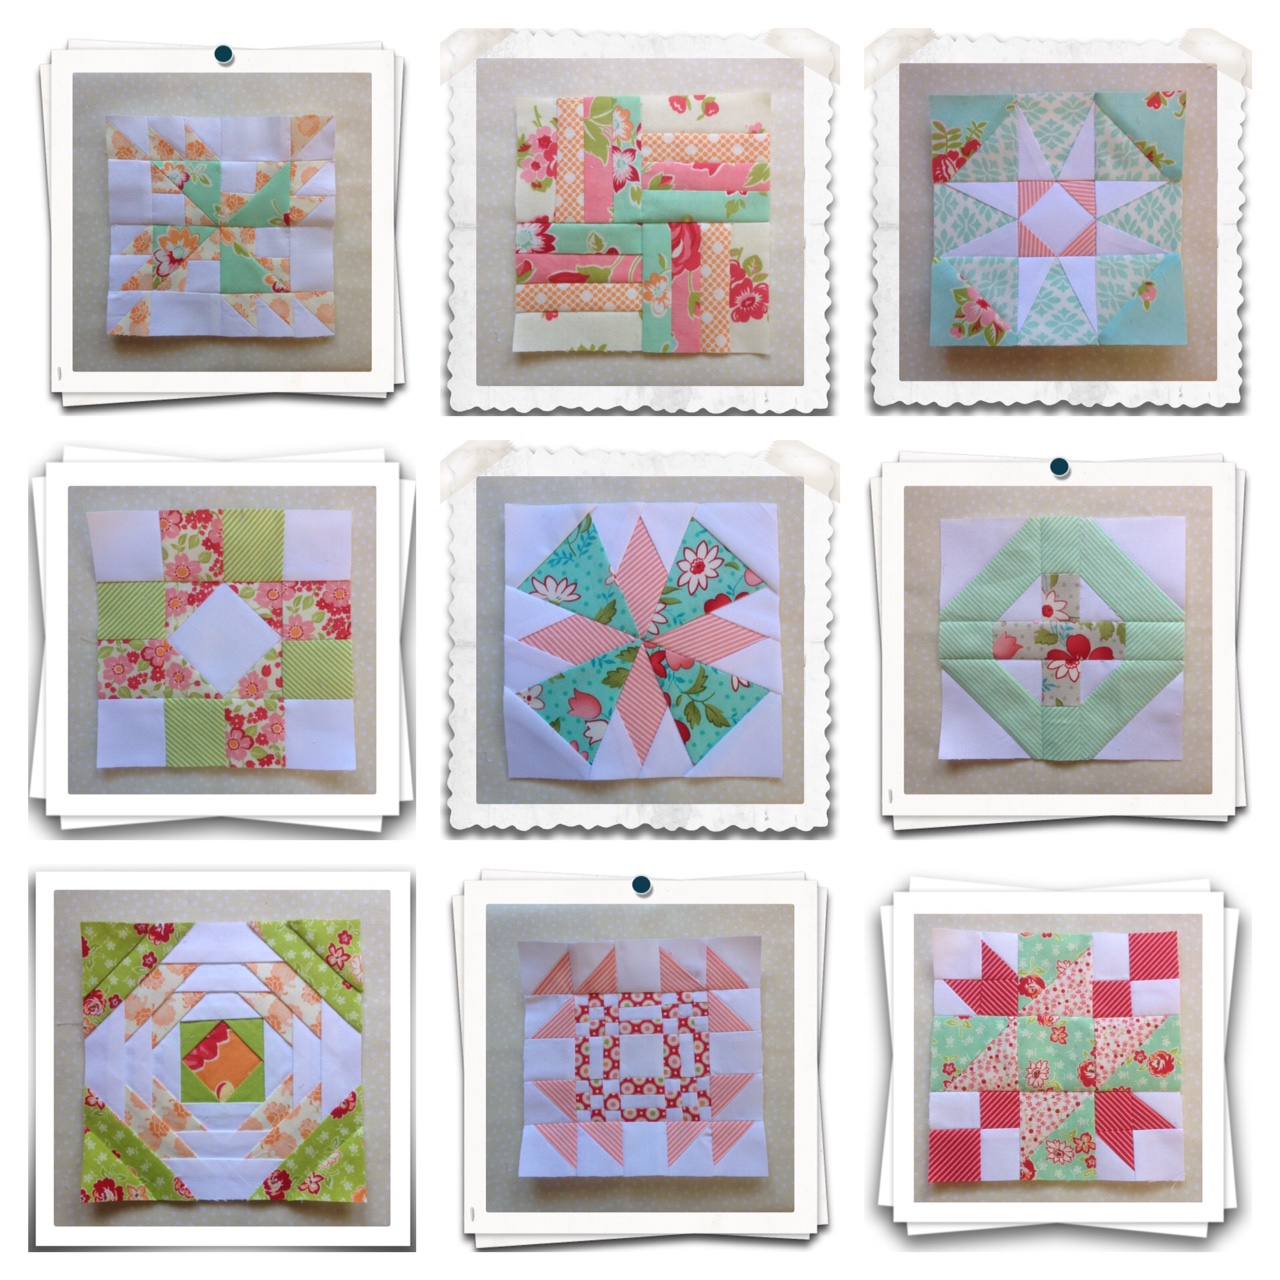 This is a picture of Dramatic Free Printable Quilt Block Patterns